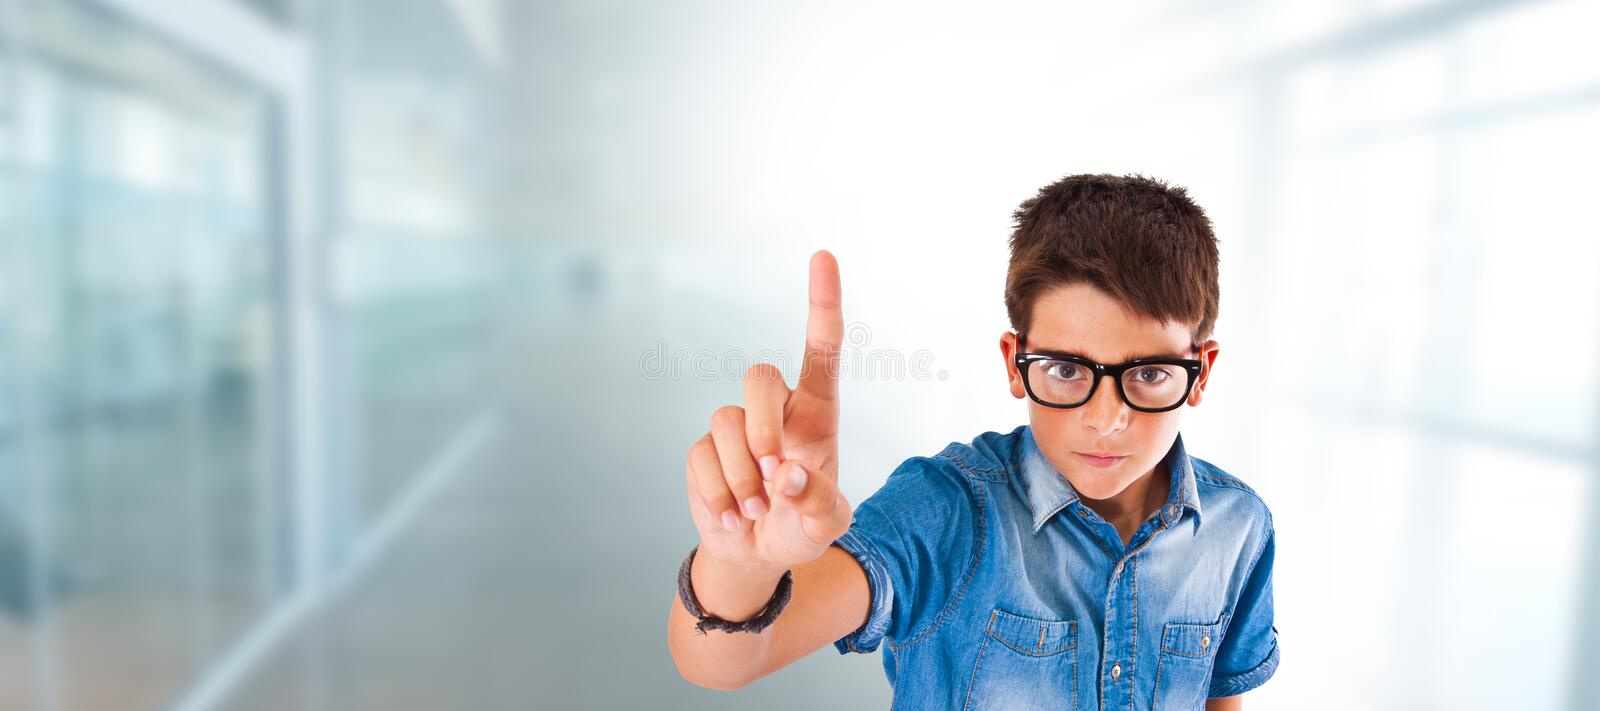 Child or student with glasses and hand raising finger stock image